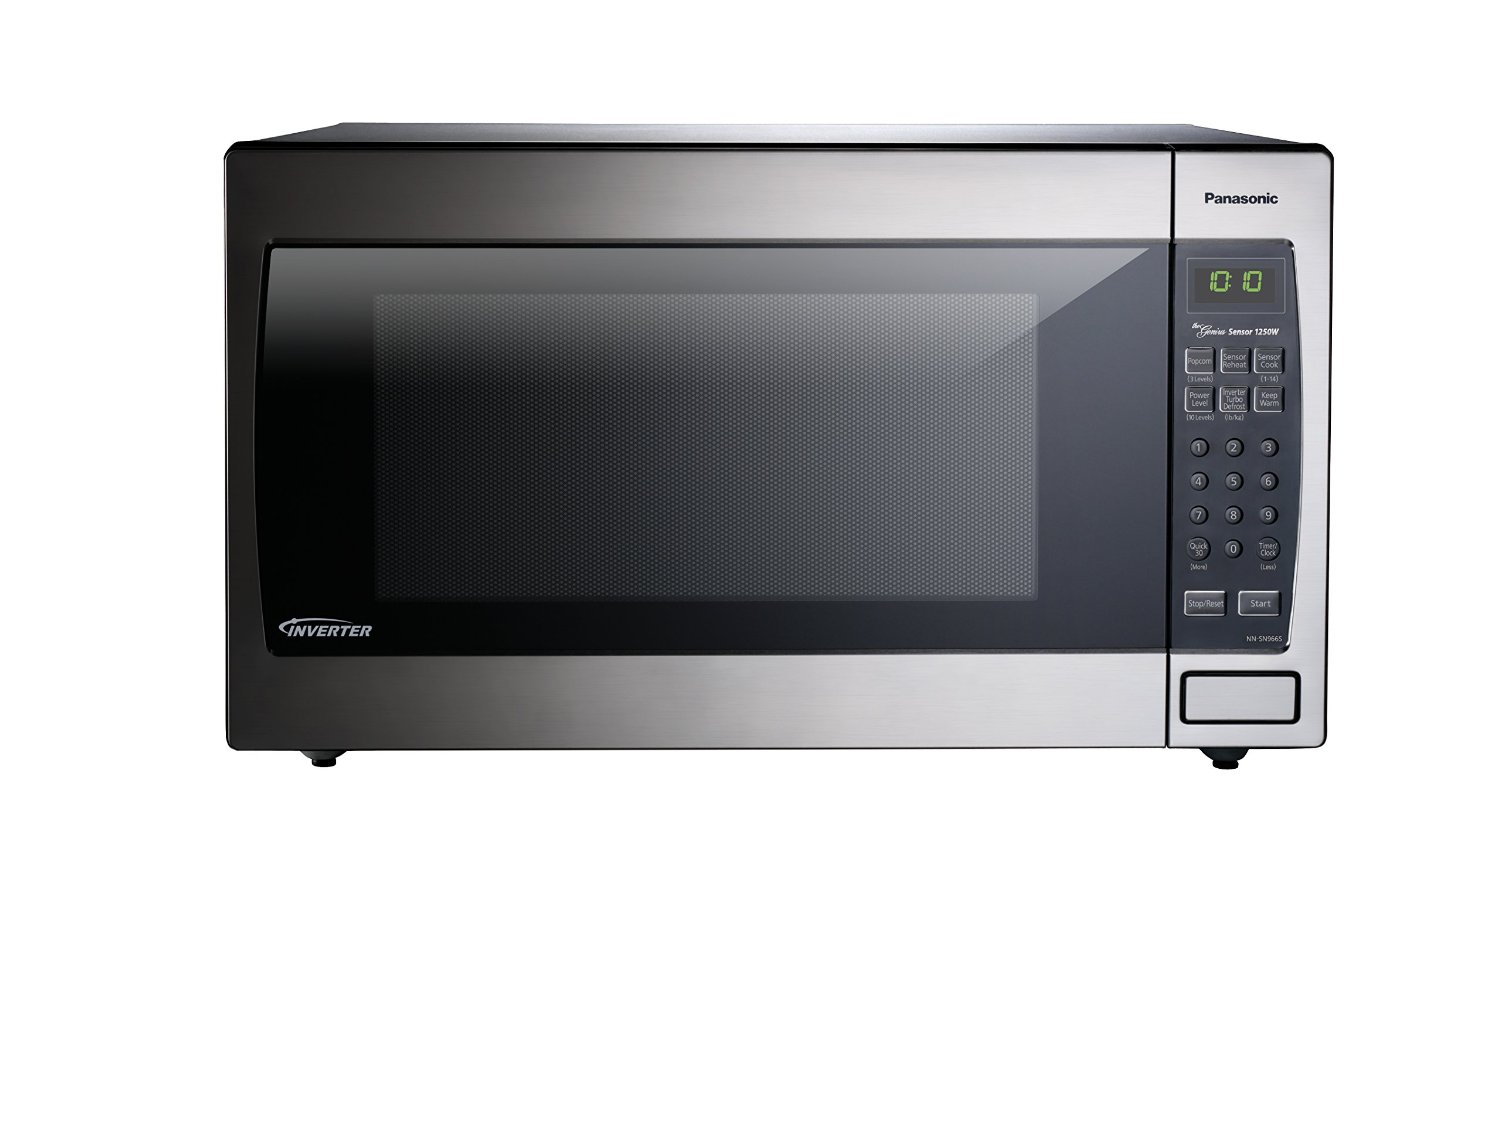 Panasonic Nn Sn966s Countertop Built In Microwave With Inverter Technology Review